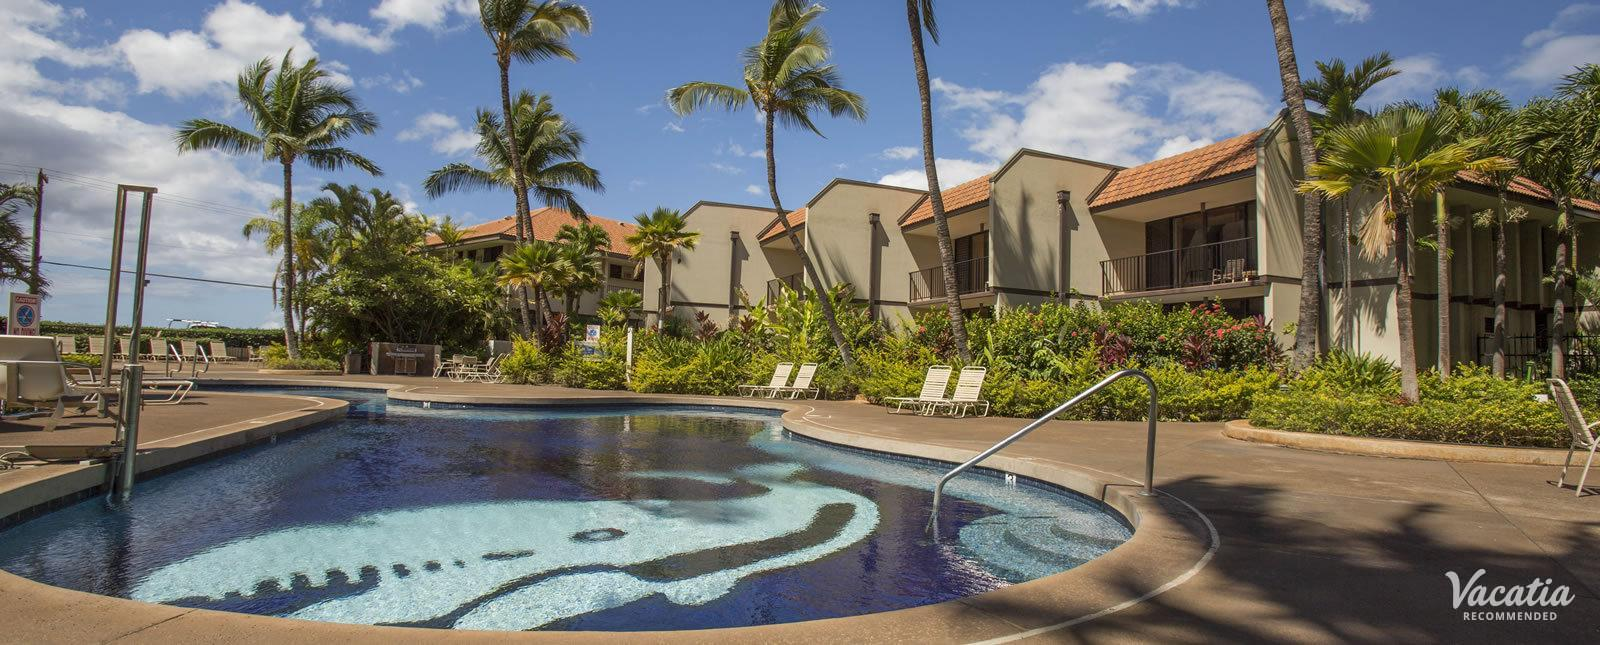 Maui Beach Vacation Club small resort pool